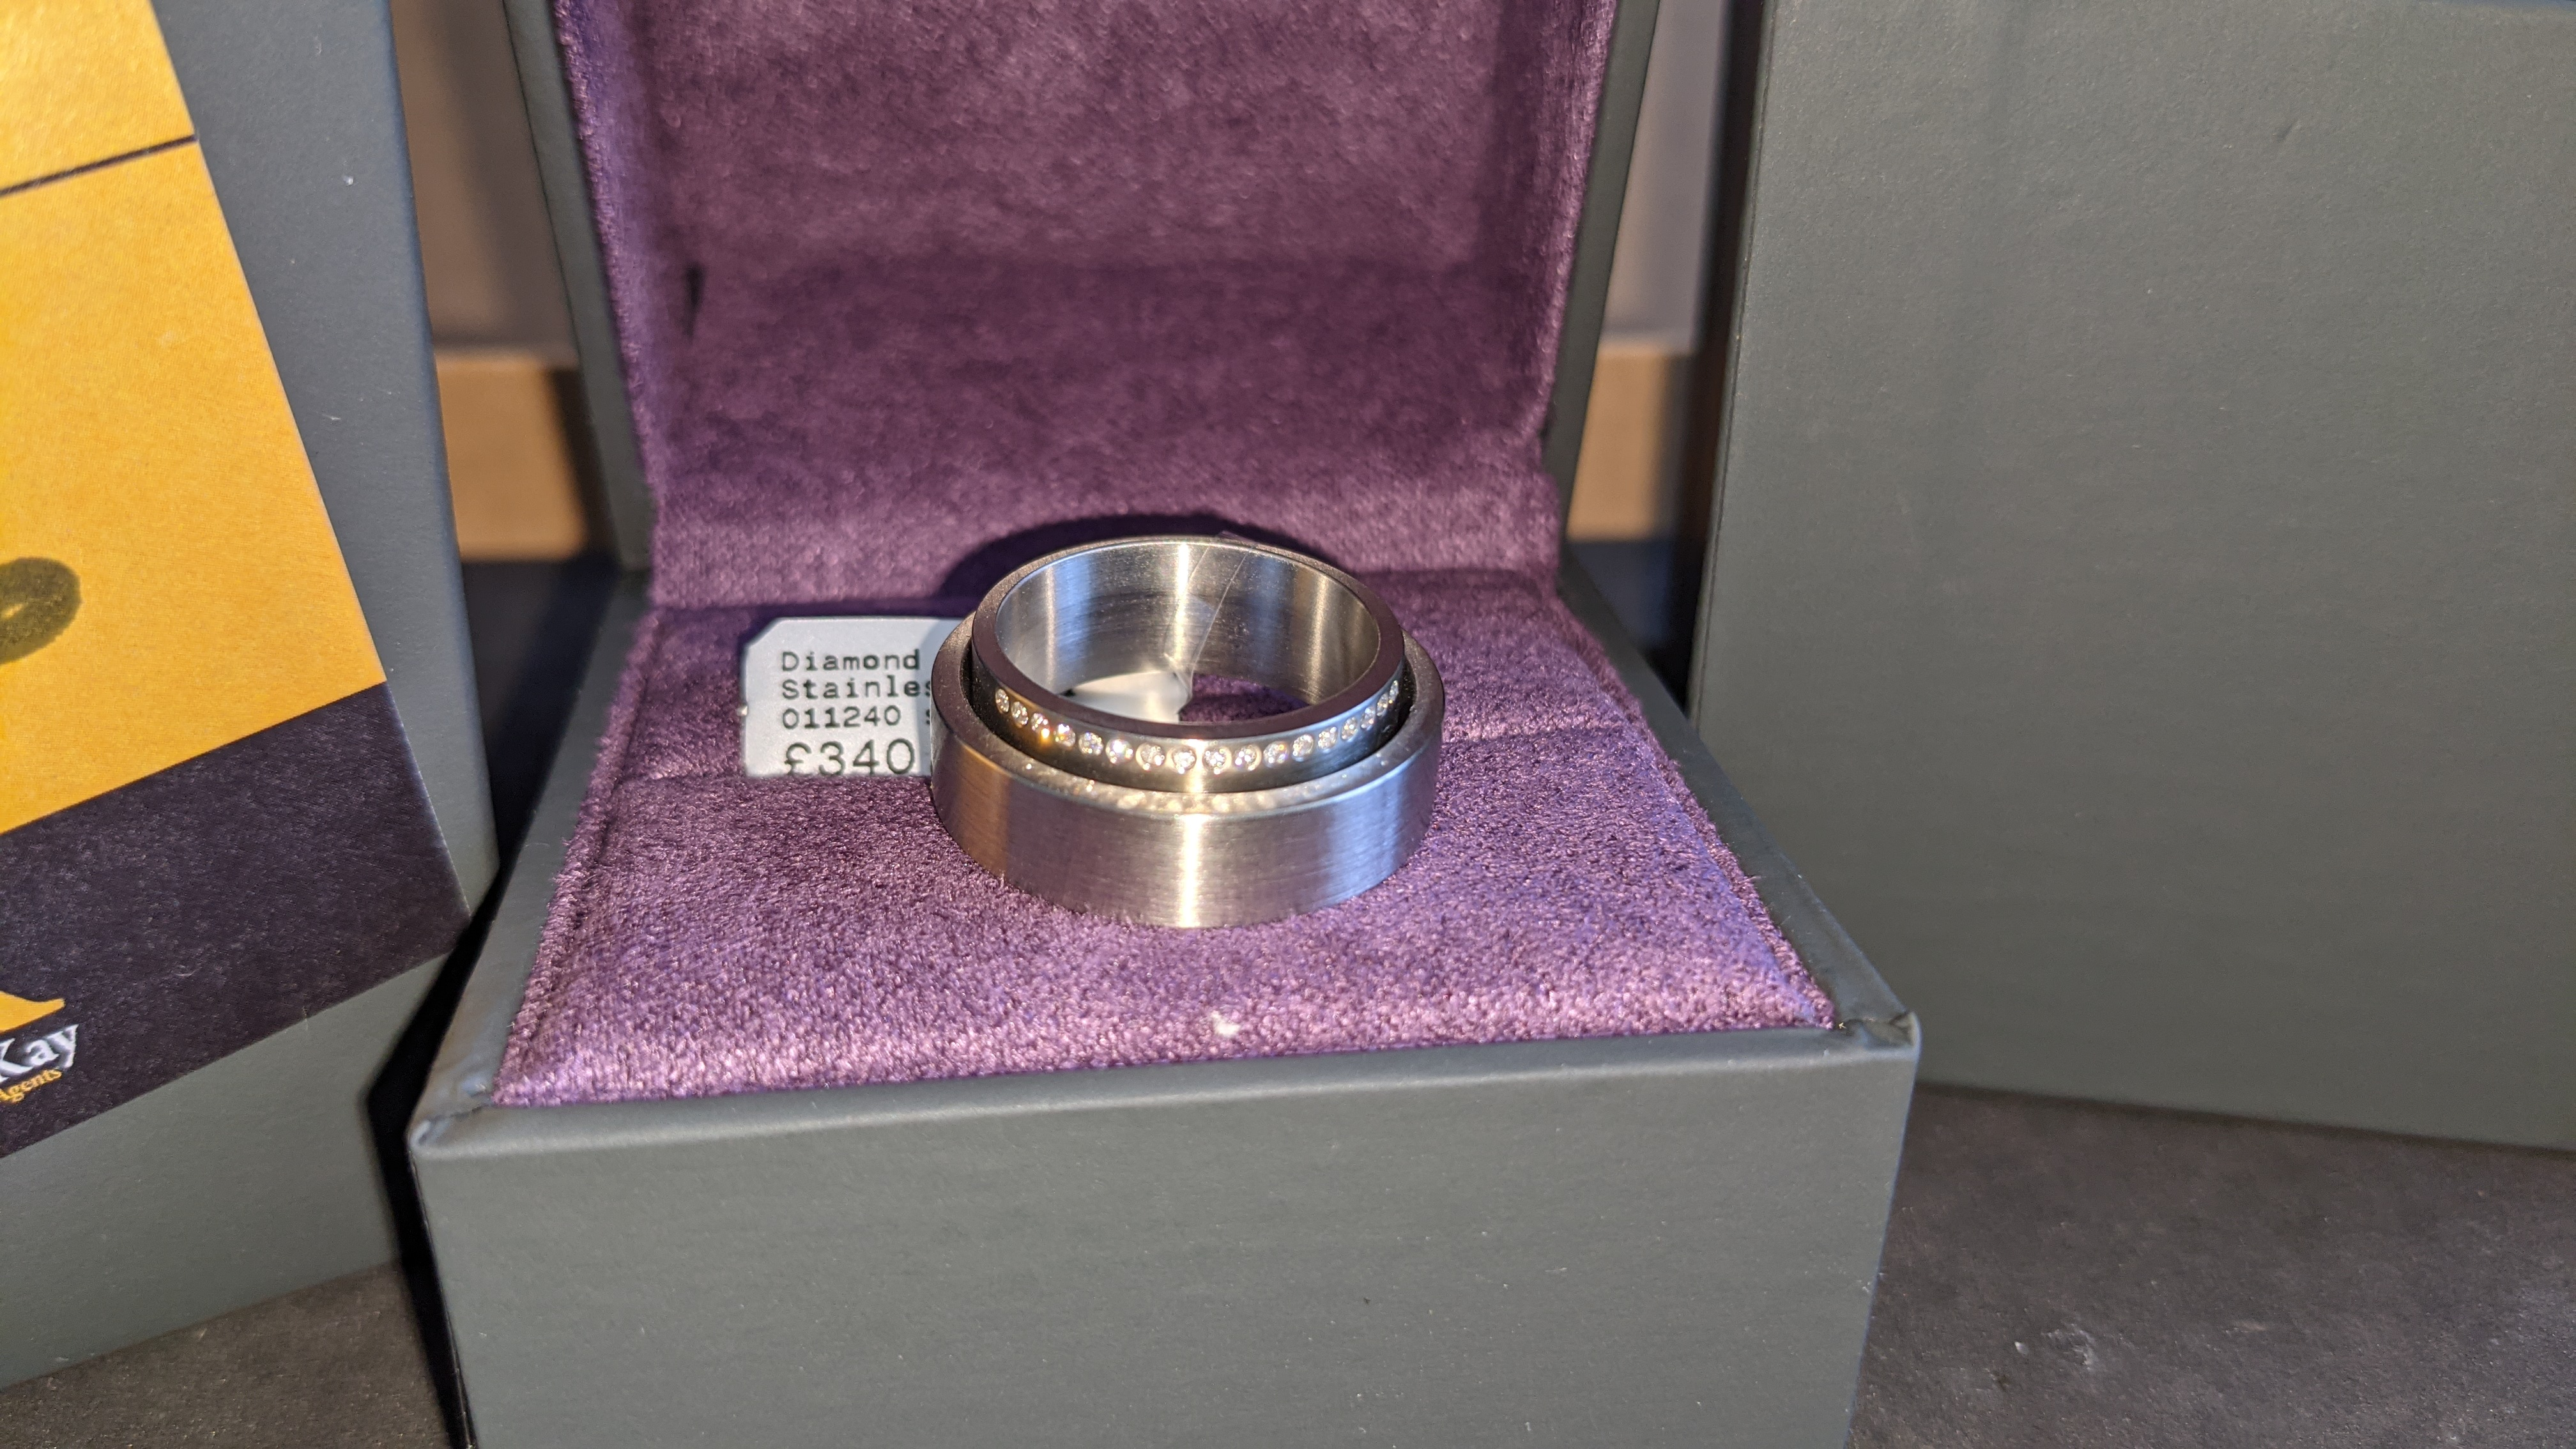 Stainless steel & diamond unusually shaped ring with inner & outer circles joined on one side, RRP £ - Image 5 of 11